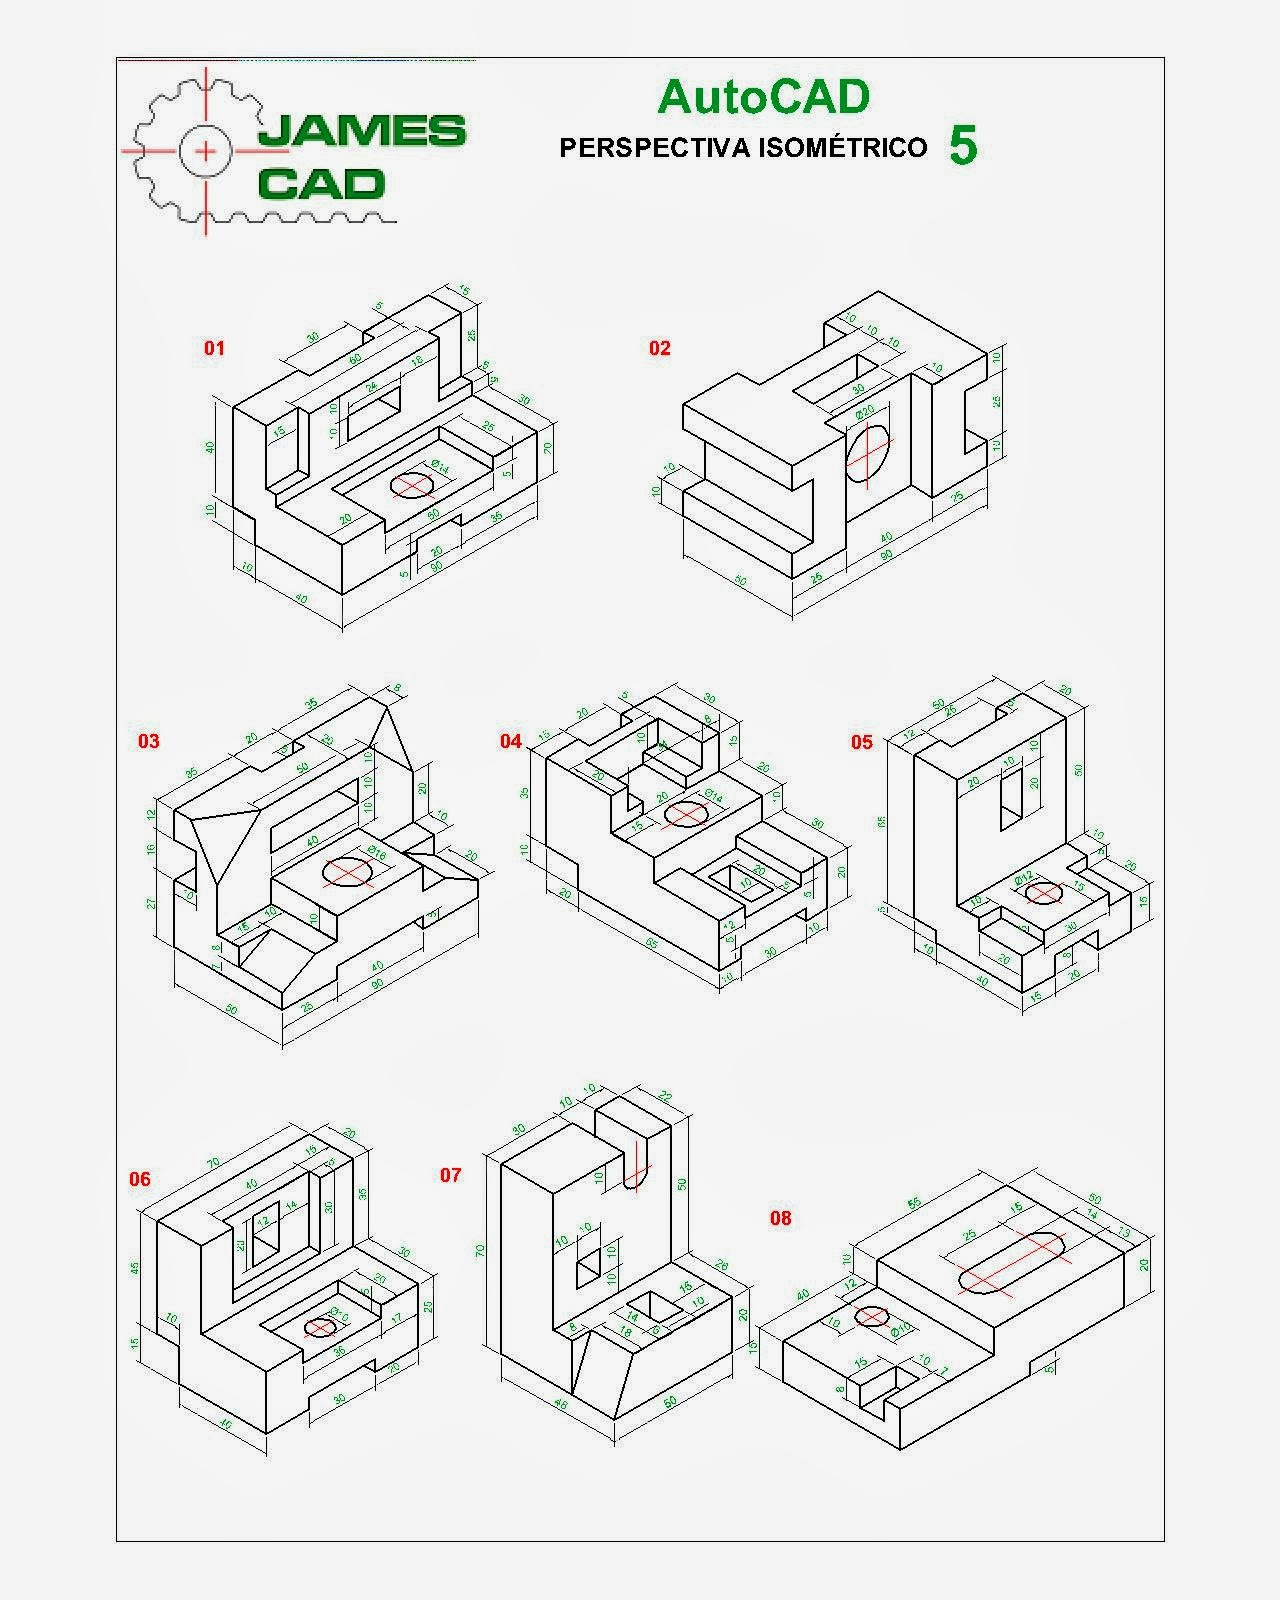 jamescad auto electrical wiring diagram top convertible top wiring harness for bmw 1 series 54347577559 [ 1280 x 1600 Pixel ]